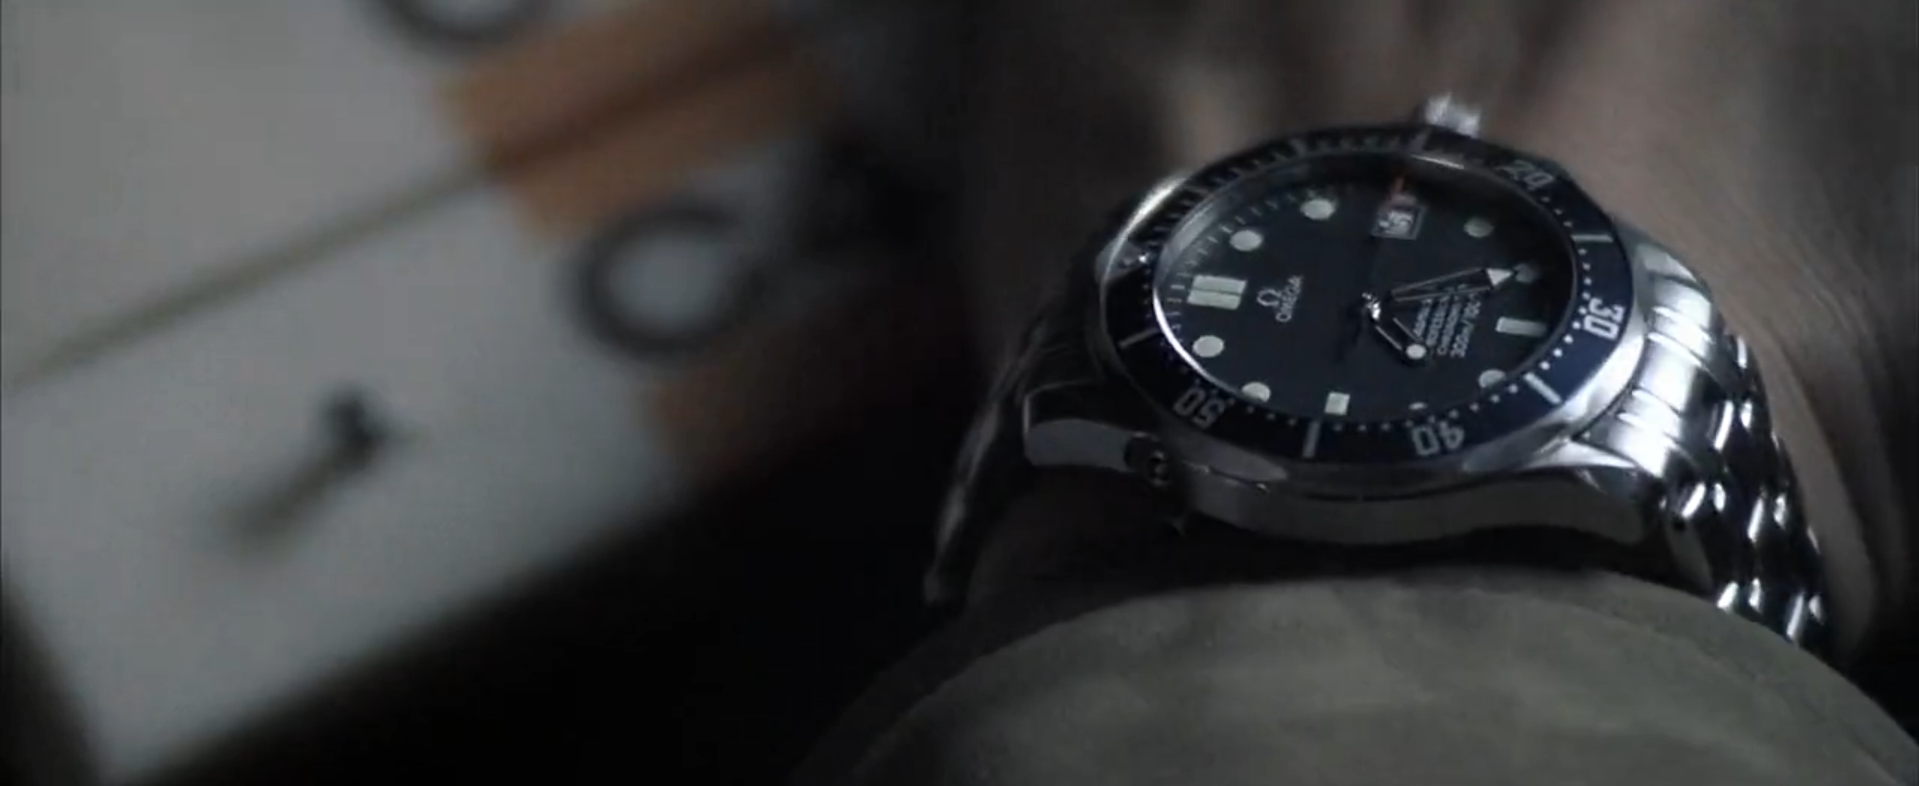 One of the many times that Pierce Brosnan uses the helium release valve as a Q gadget. Maybe that's the reason Omega keep it on their watches?